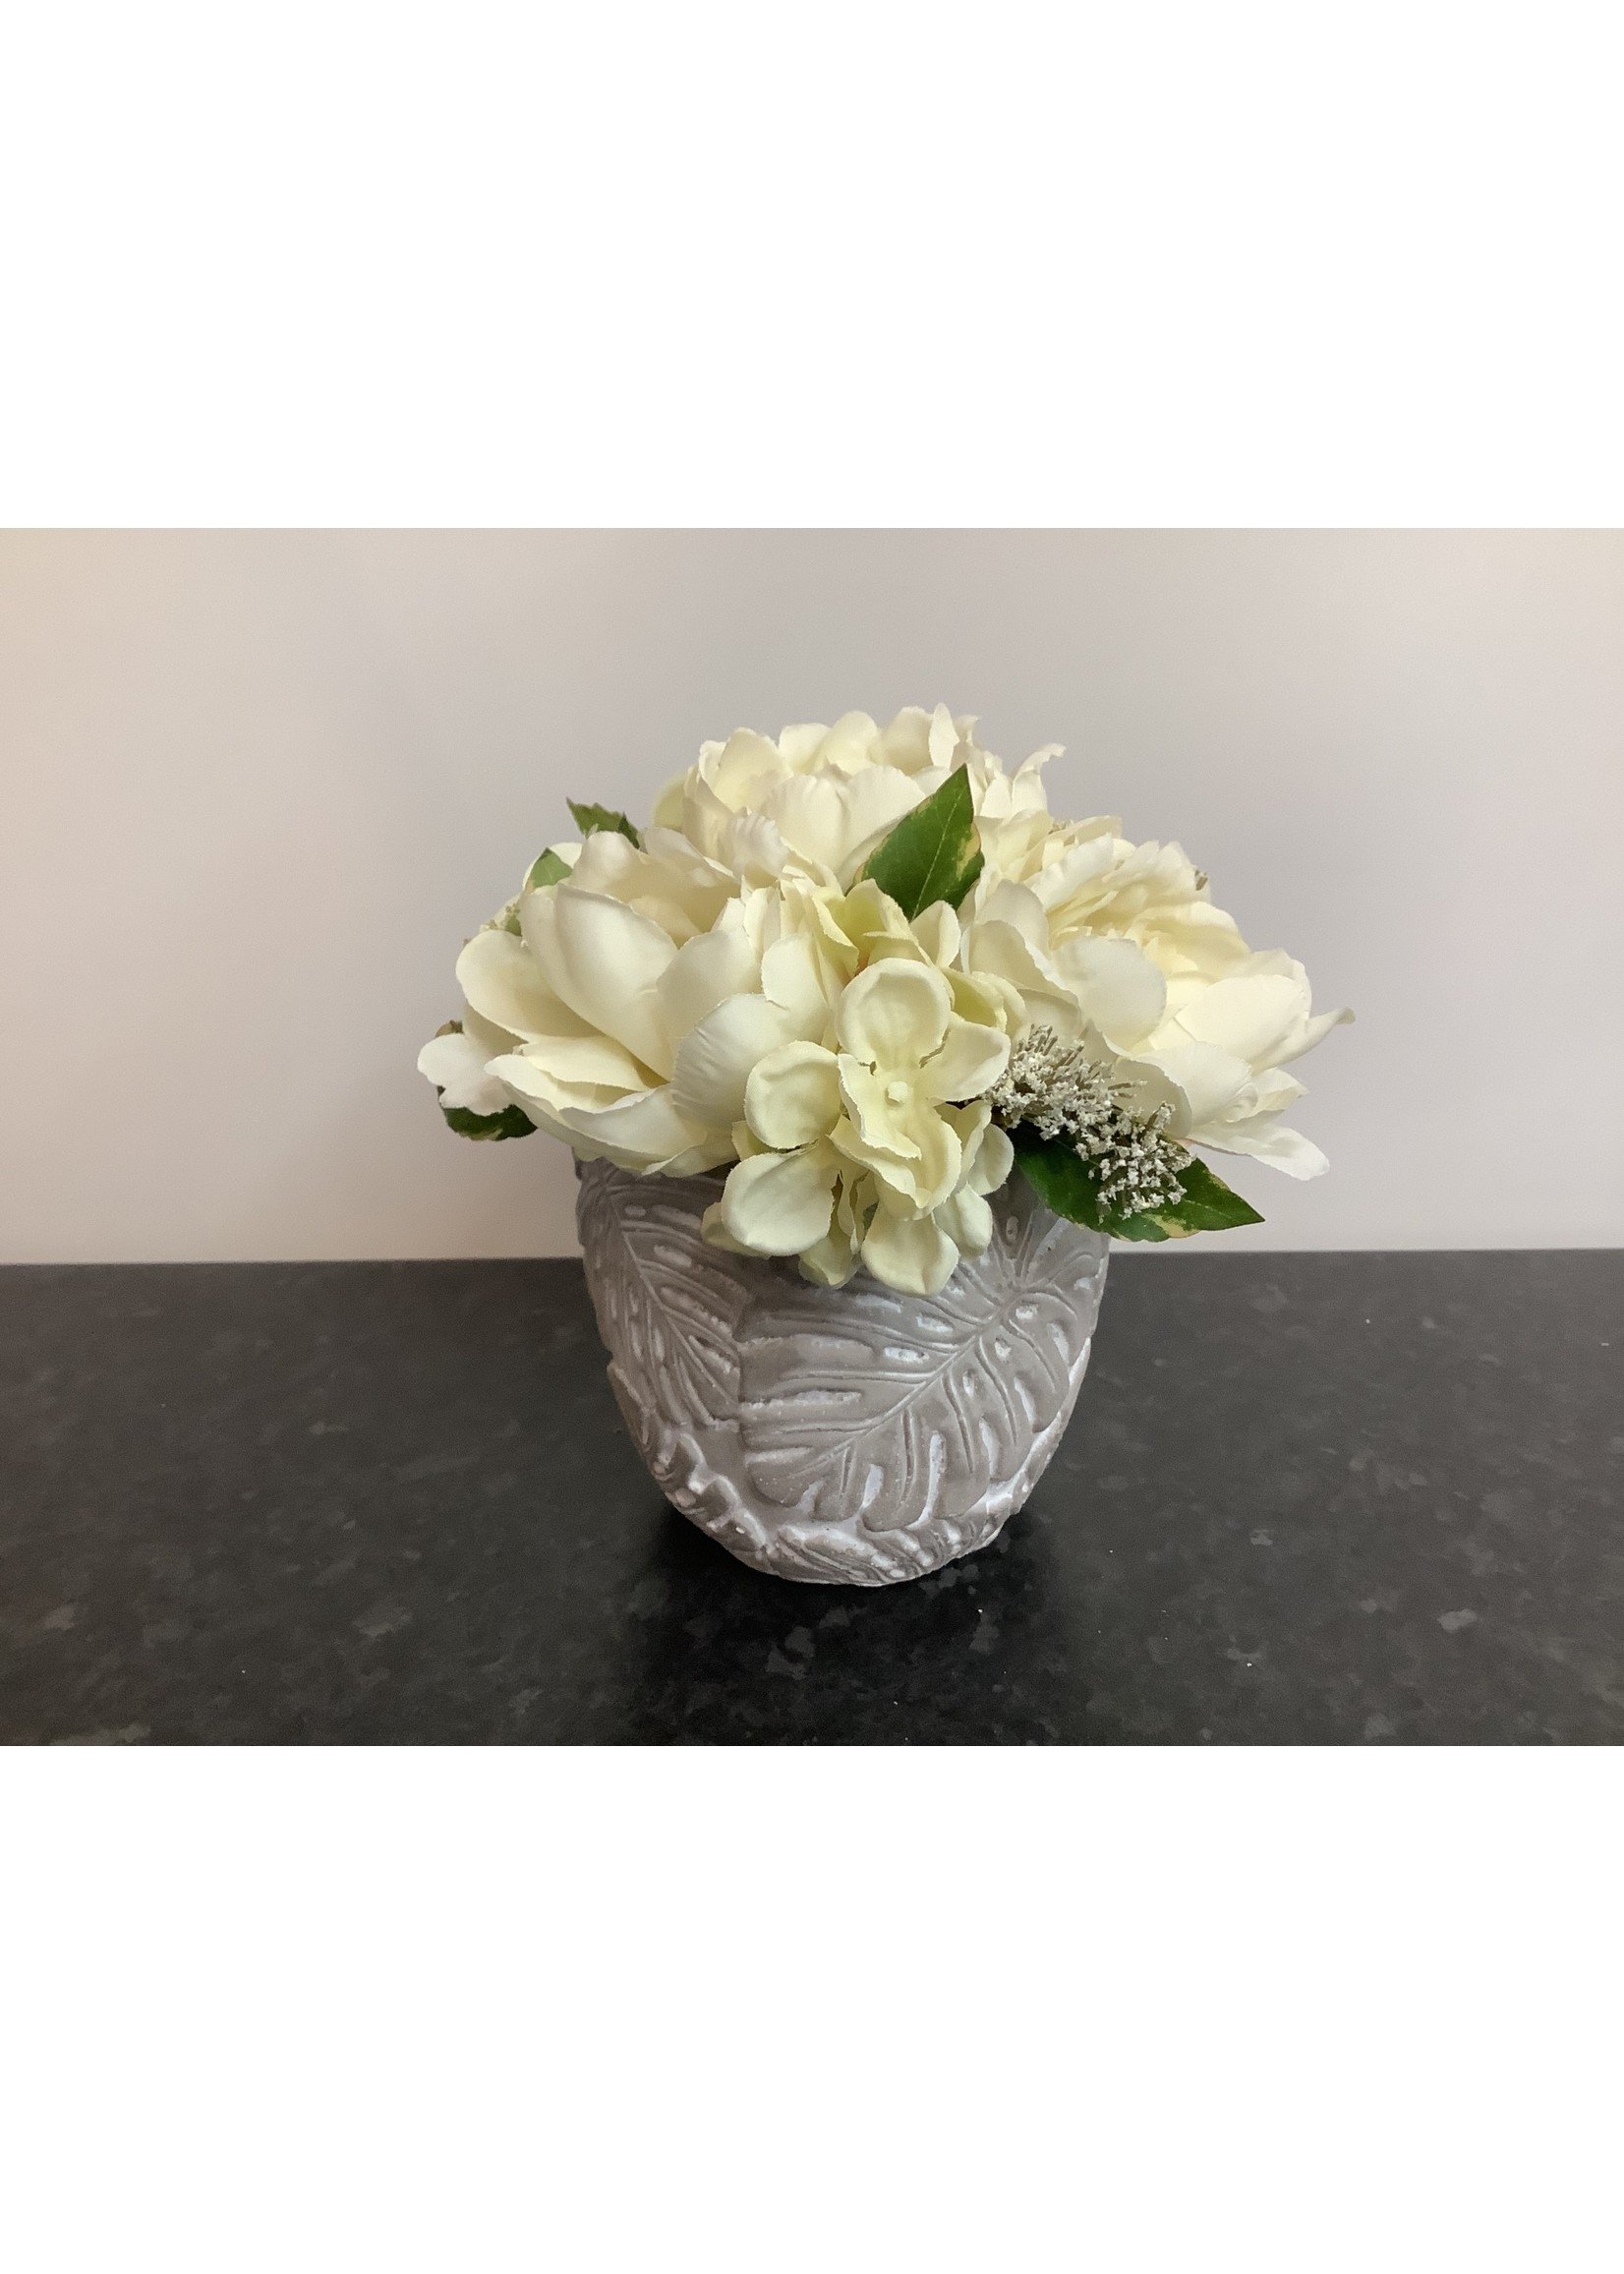 Vintage flowers in small pot 15 x 24cm